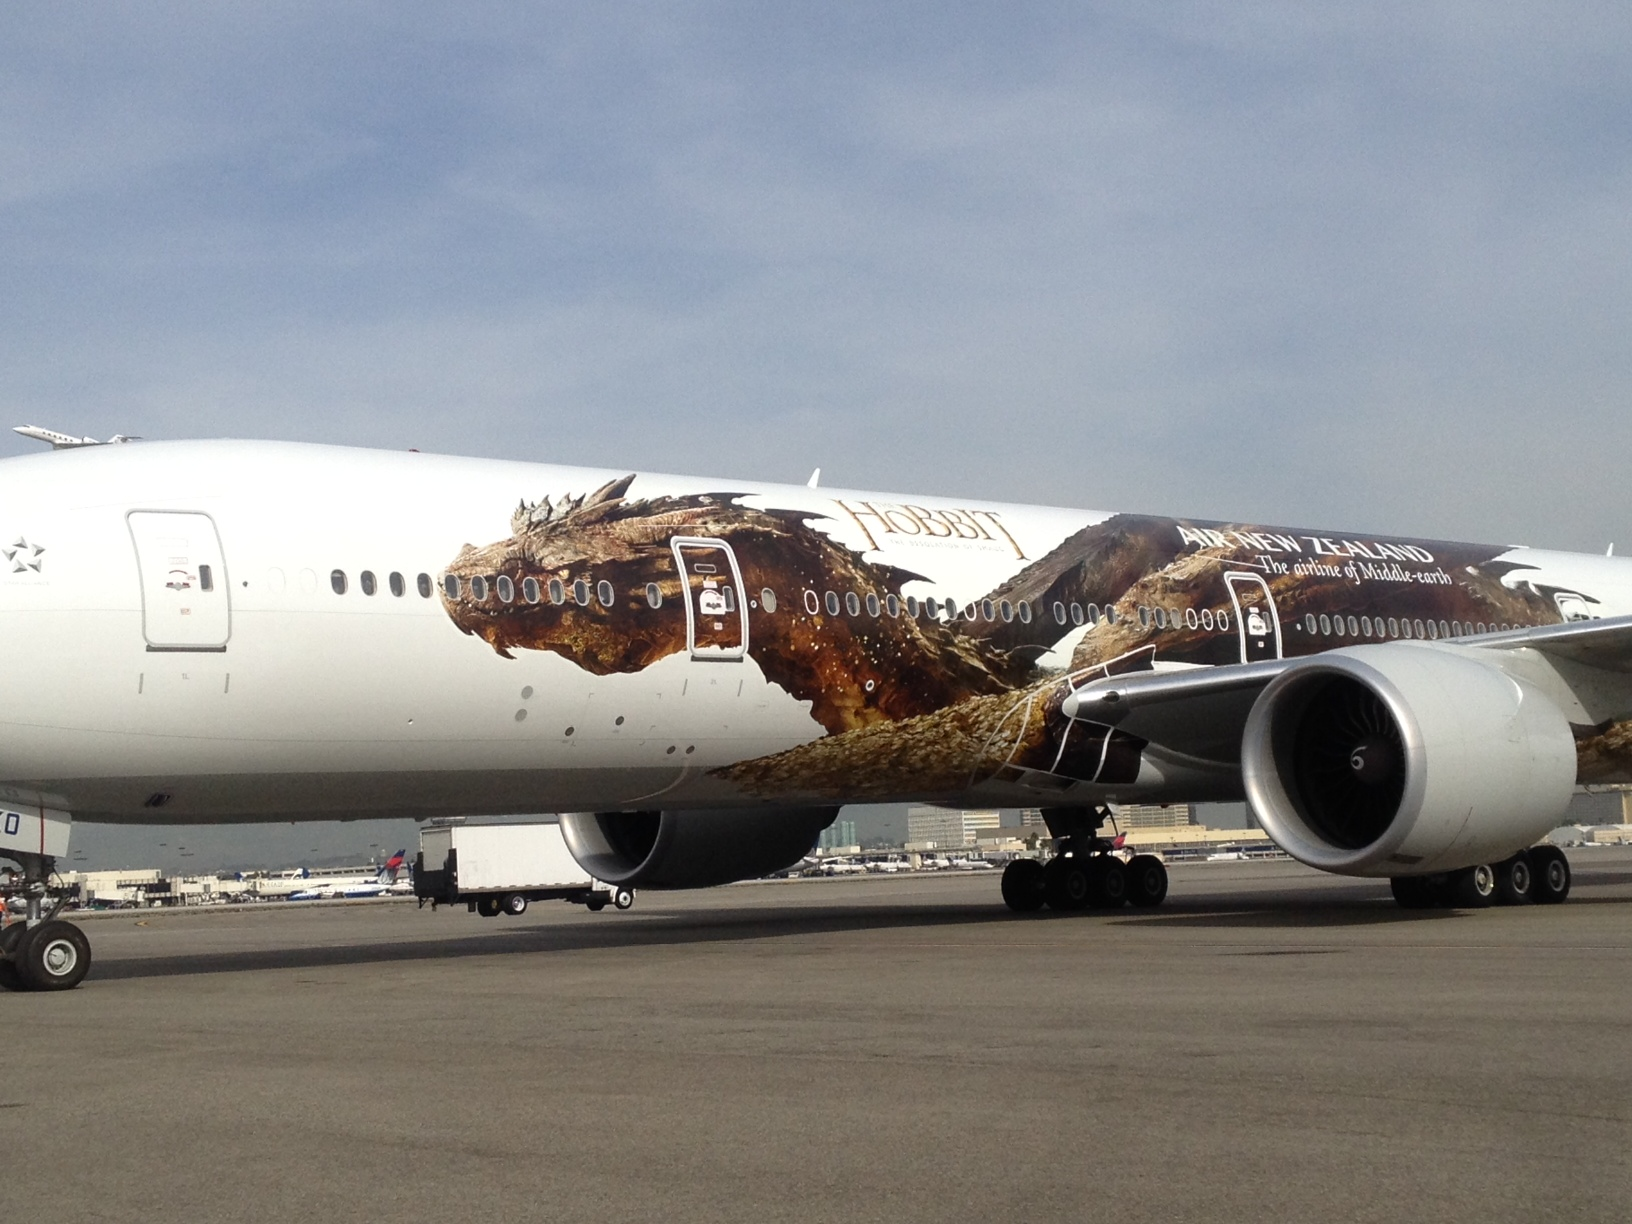 New Zealand Job Interview The Hobbit The Desolation Of Smaug Aircraft Image 6